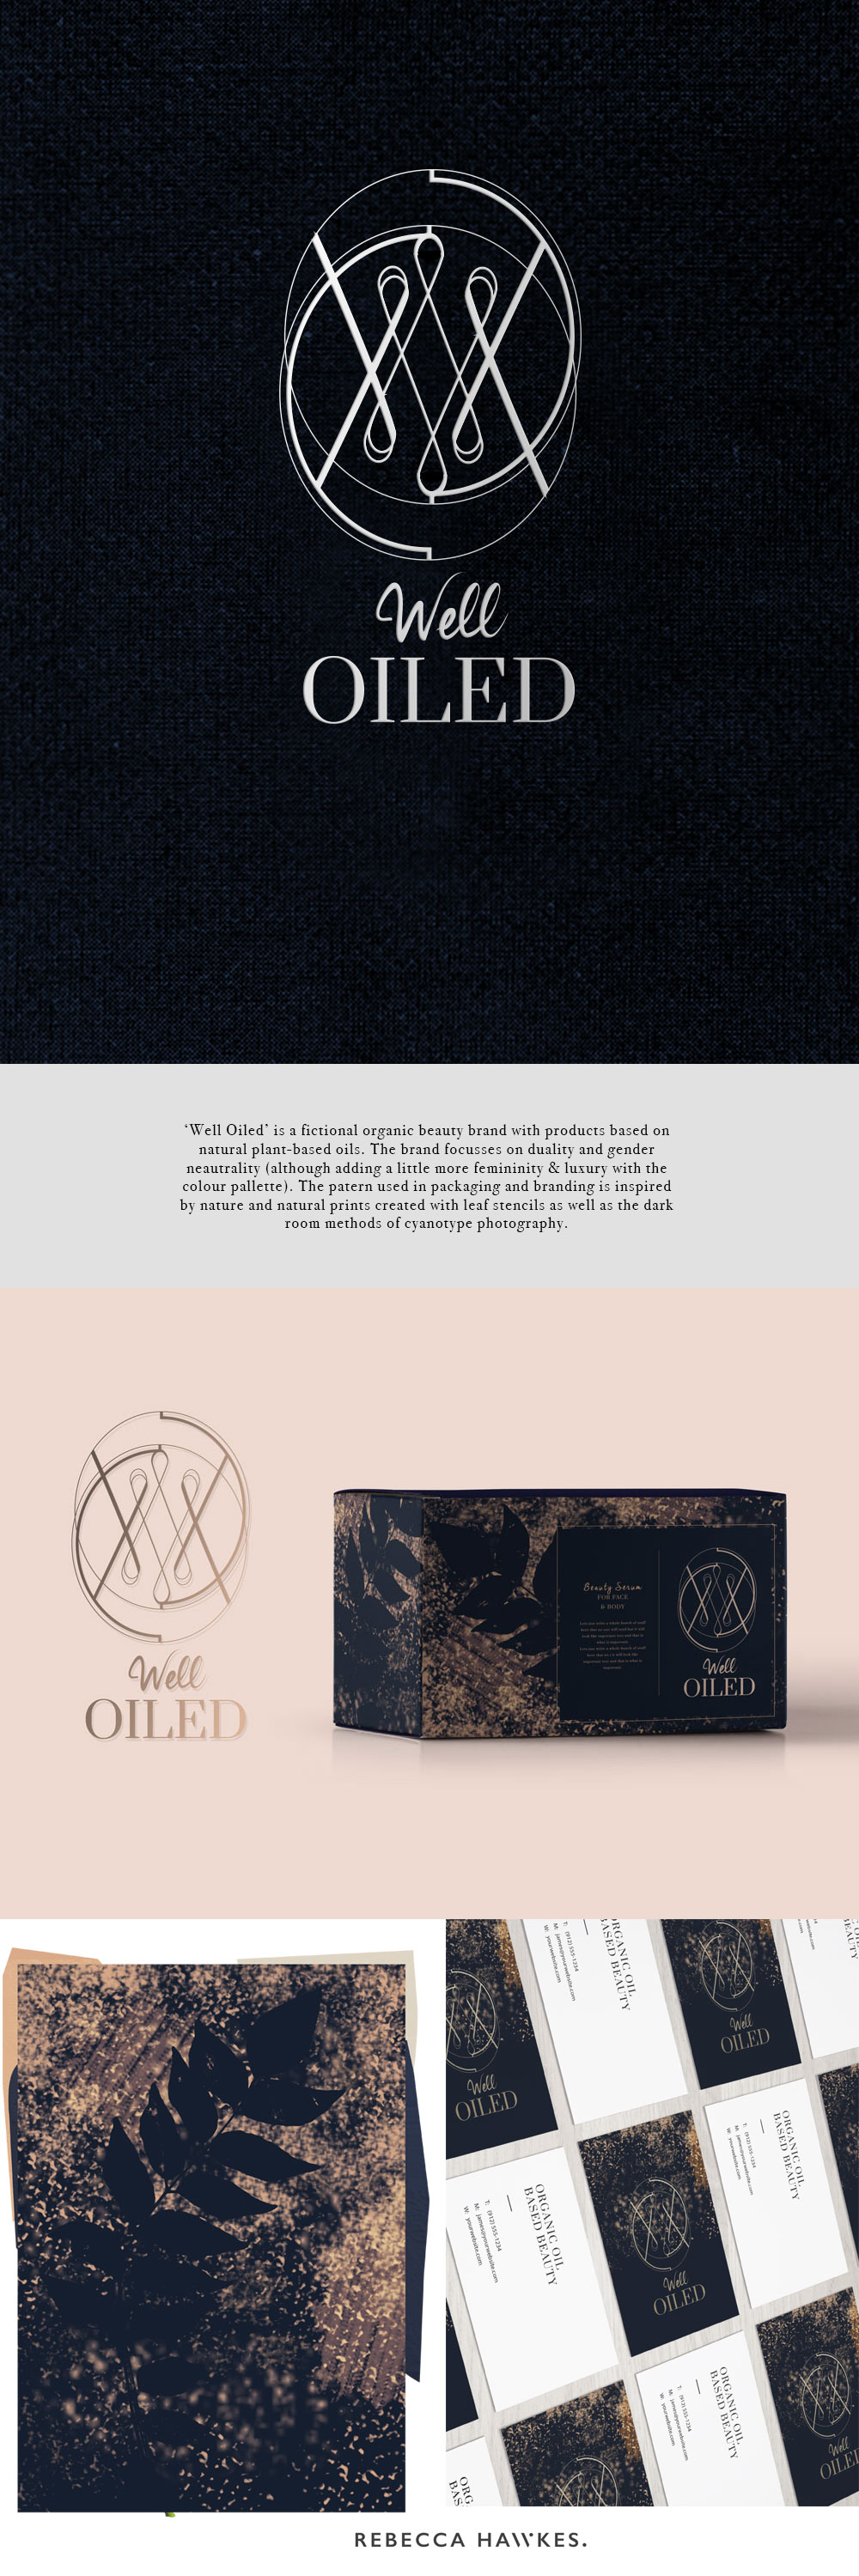 Well Oiled organic beauty brand | Design by Rebecca Hawkes